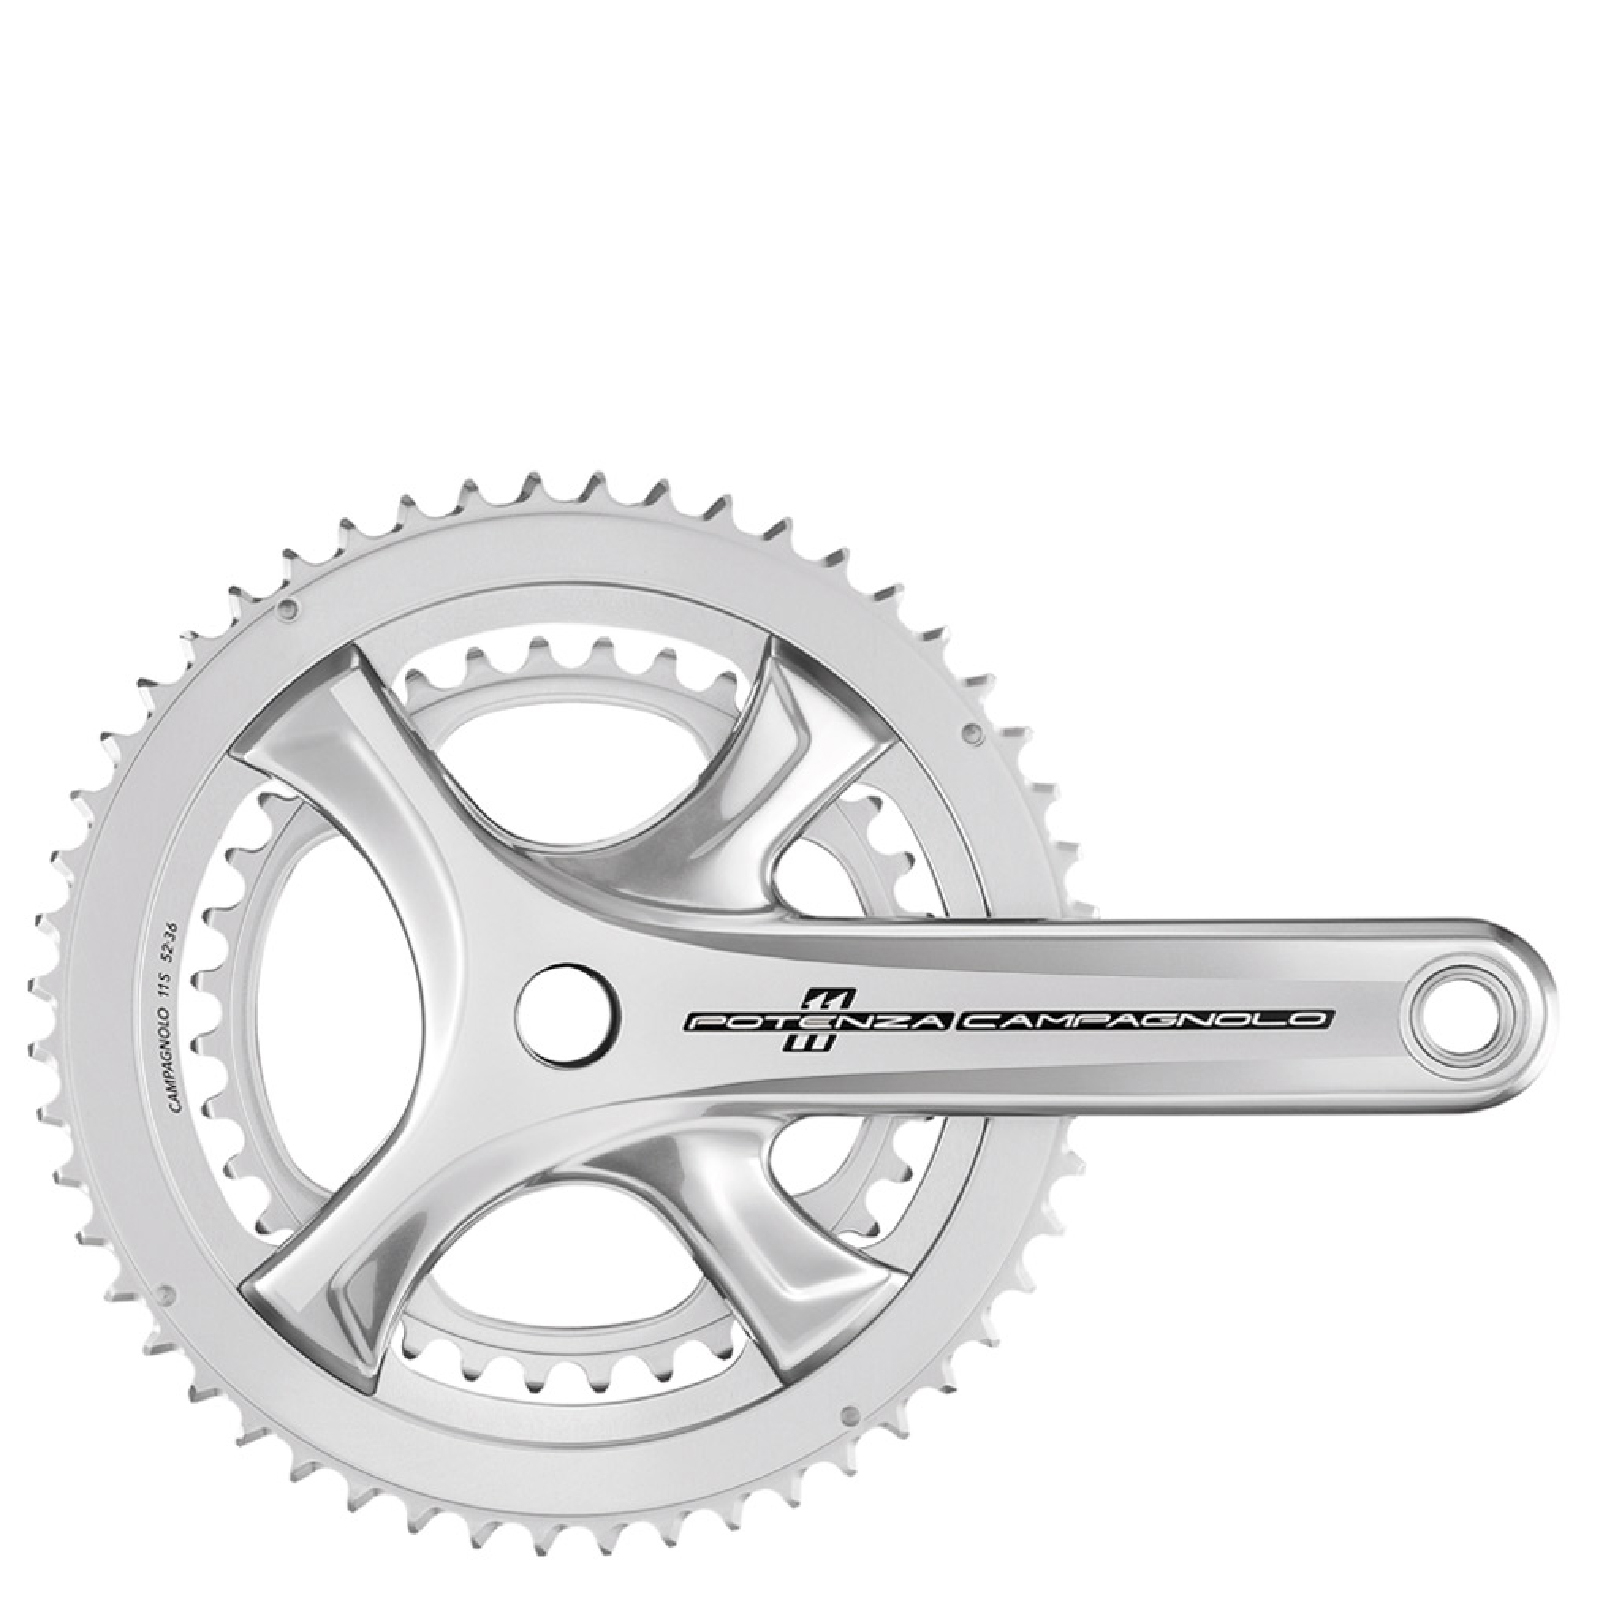 Campagnolo Potenza 11 Speed Power Torque Chainset - Silver